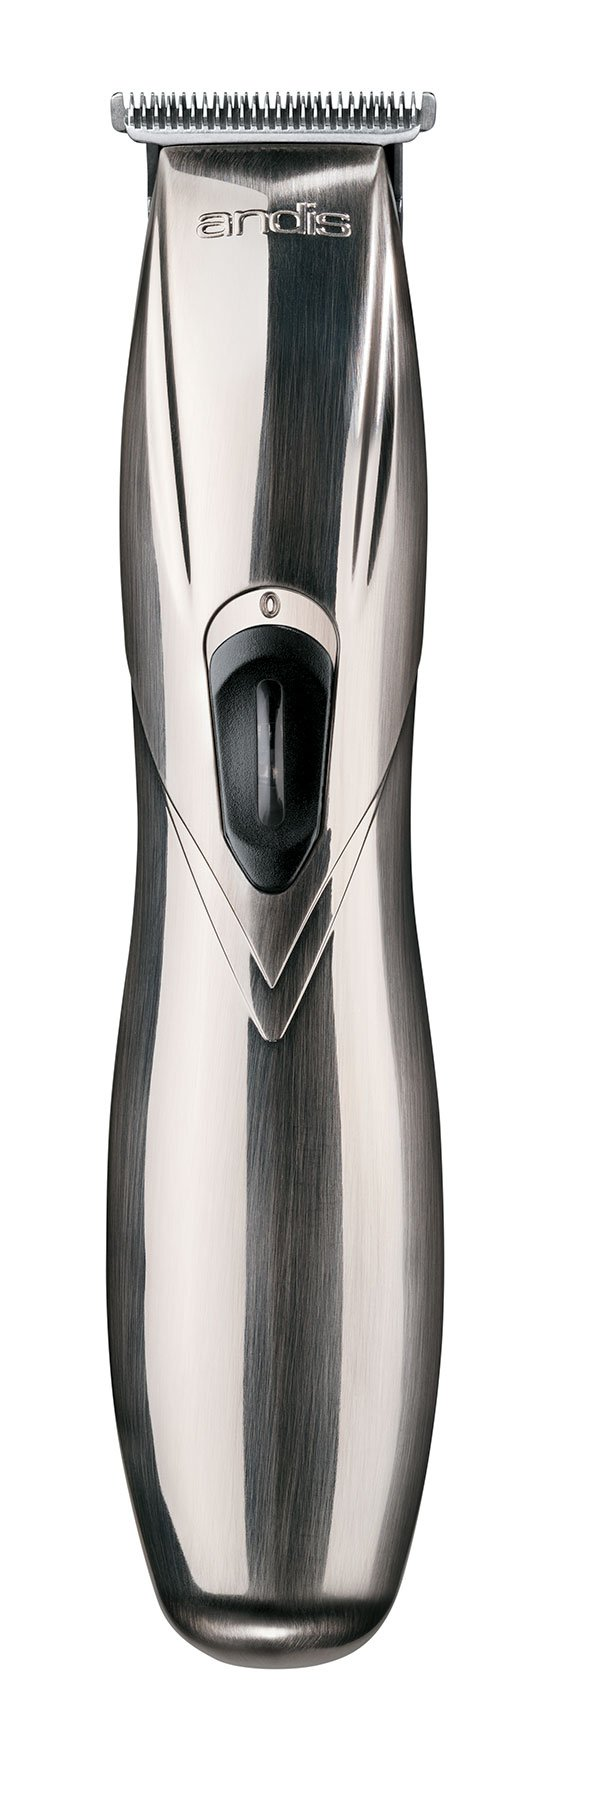 ANDIS SlimLine Pro Lithium Ion Cordless Trimmer is perfect for light- duty touch-ups and trimming around necklines. The improved rotary motor provides more speed and power and offers up to two hours of run time.